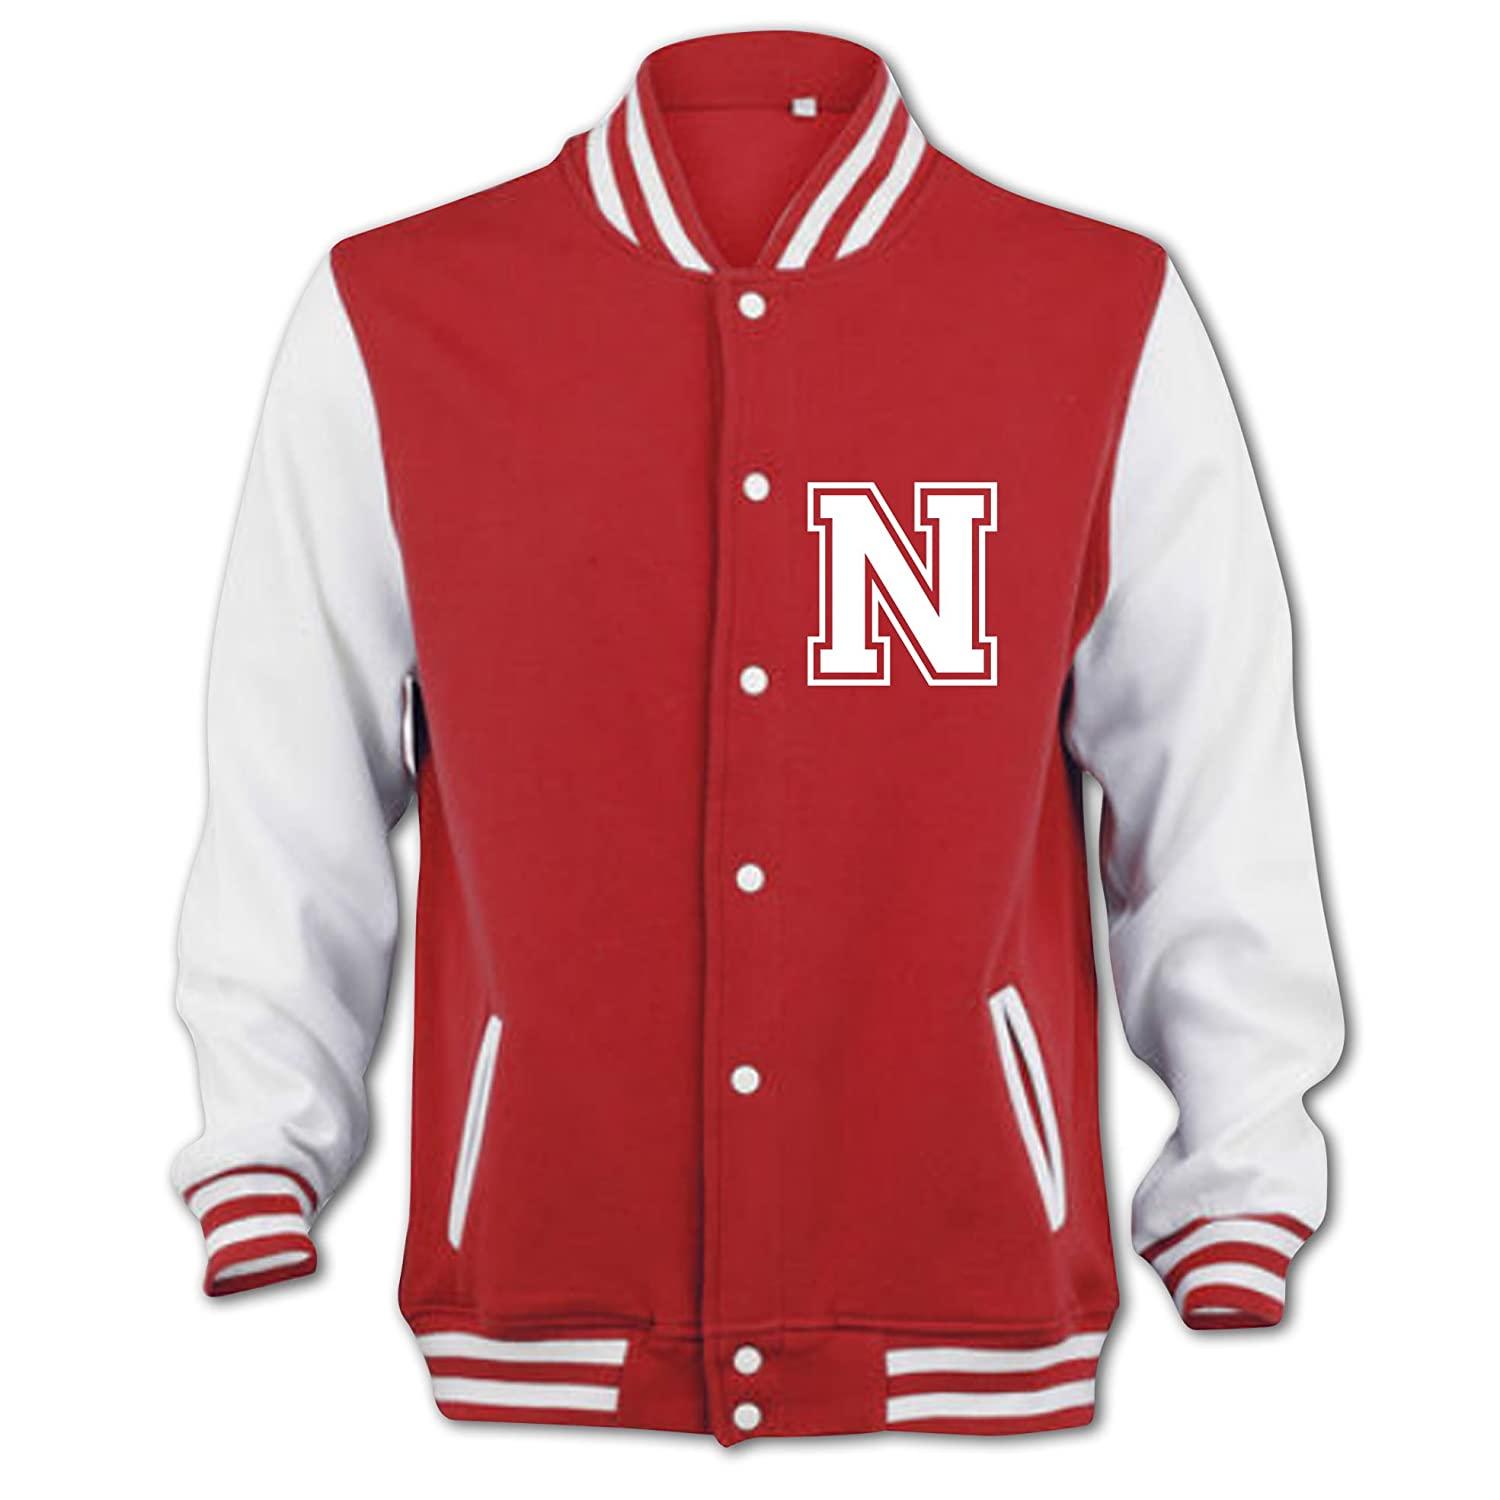 Bang Tidy Clothing Unisex-Adult Niall Horan Fan Jacket XX-Large Red 1149